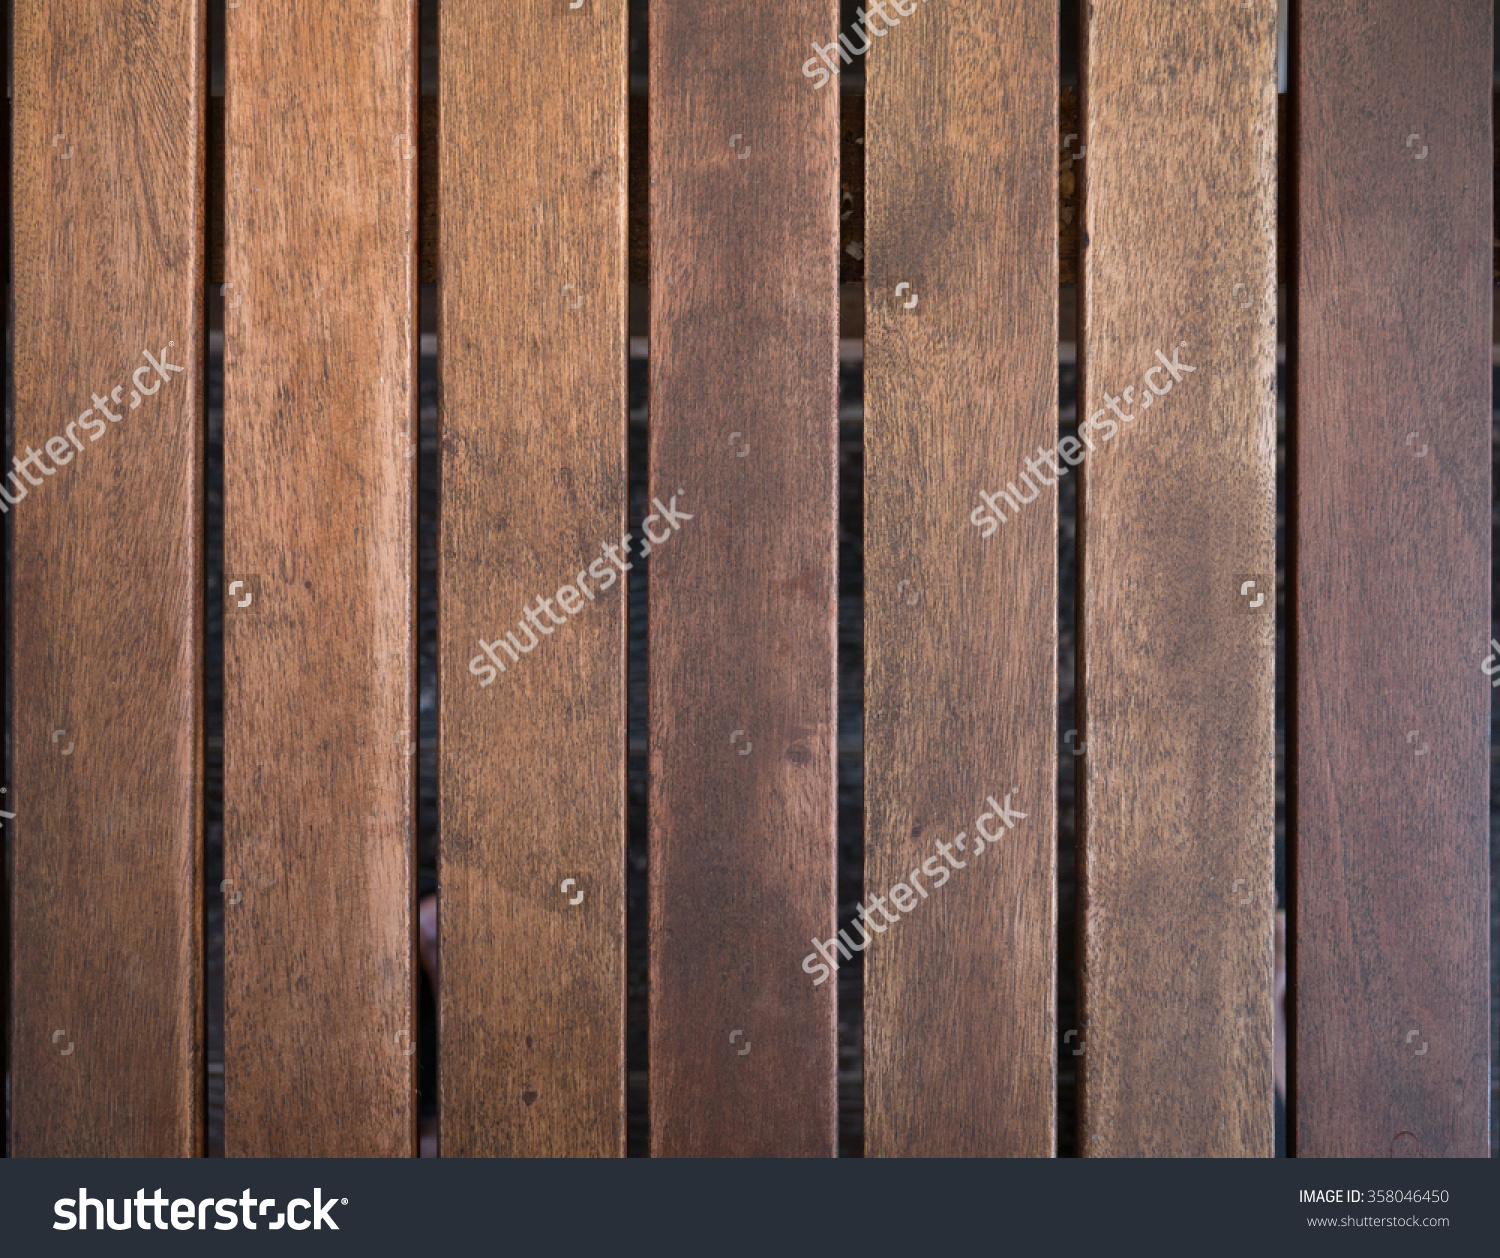 Wood Strip Background Stock Photo 358046450 : Shutterstock.